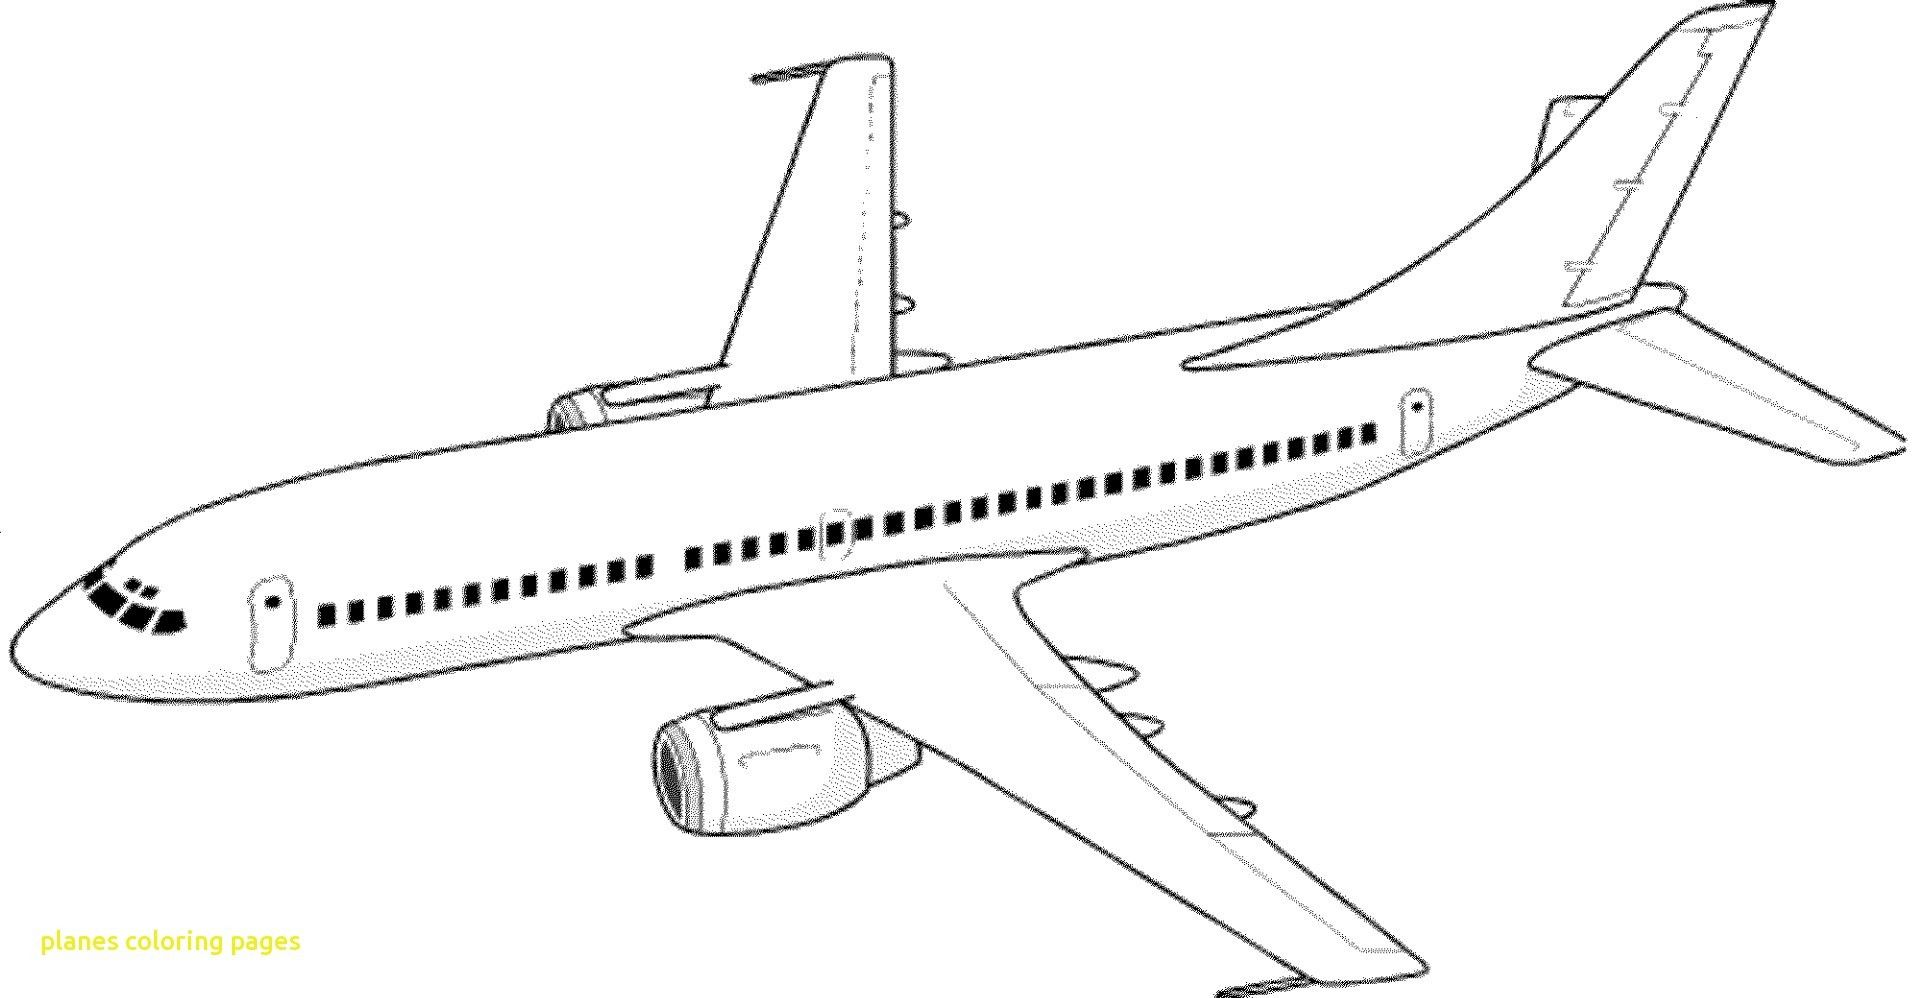 Jet Coloring Pages Energy Blue Angel Jet Coloring Pages Planes With Aeroplane Colouring Entitlementtrap Com Airplane Coloring Pages Coloring Pages To Print Printable Coloring Pages